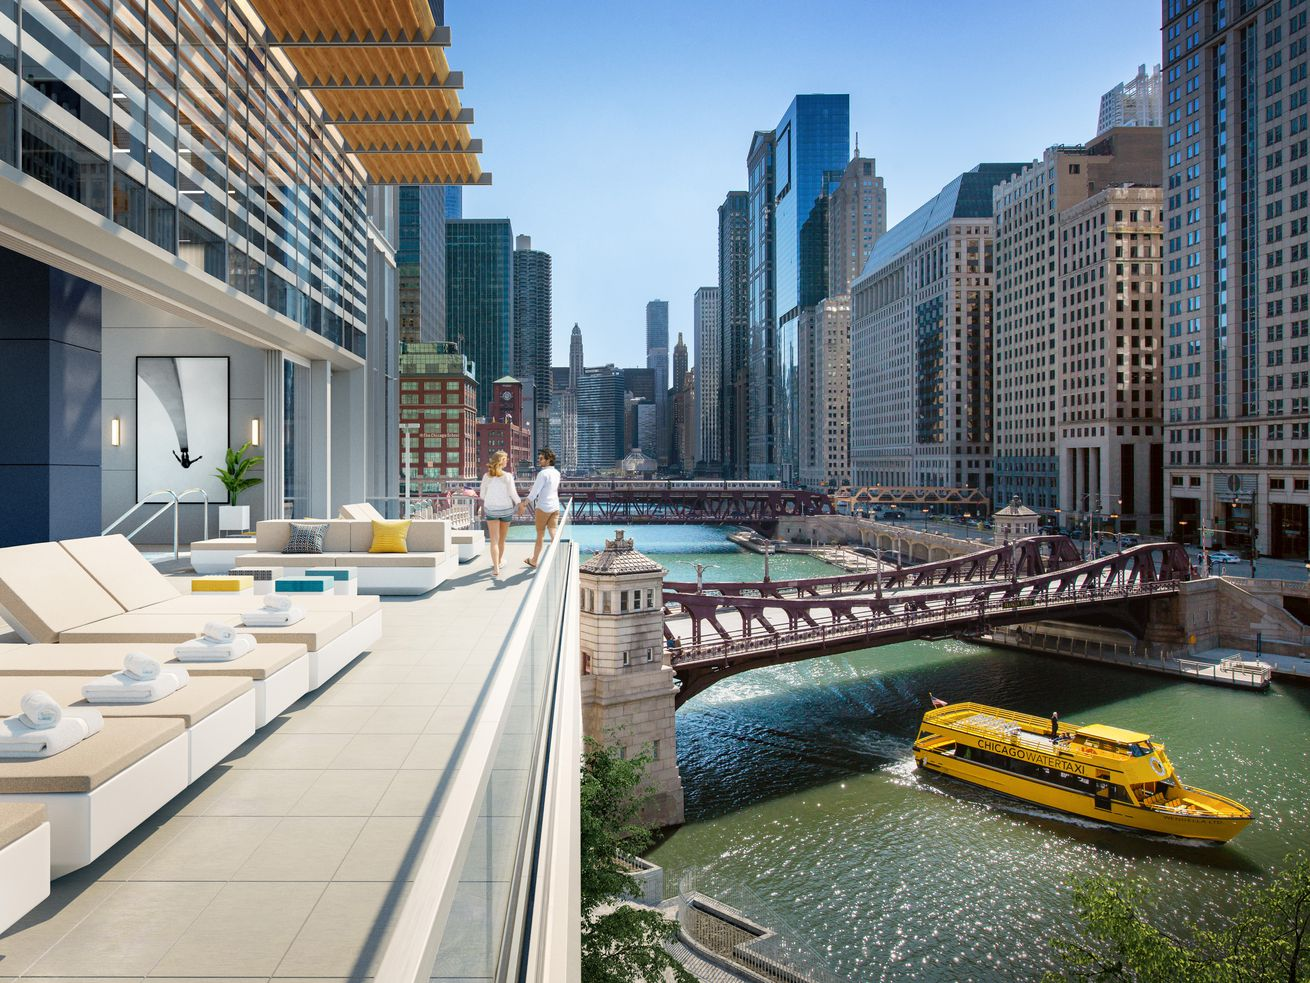 A rendering of an outdoor deck at Wolf Point East, overlooking the Chicago River.